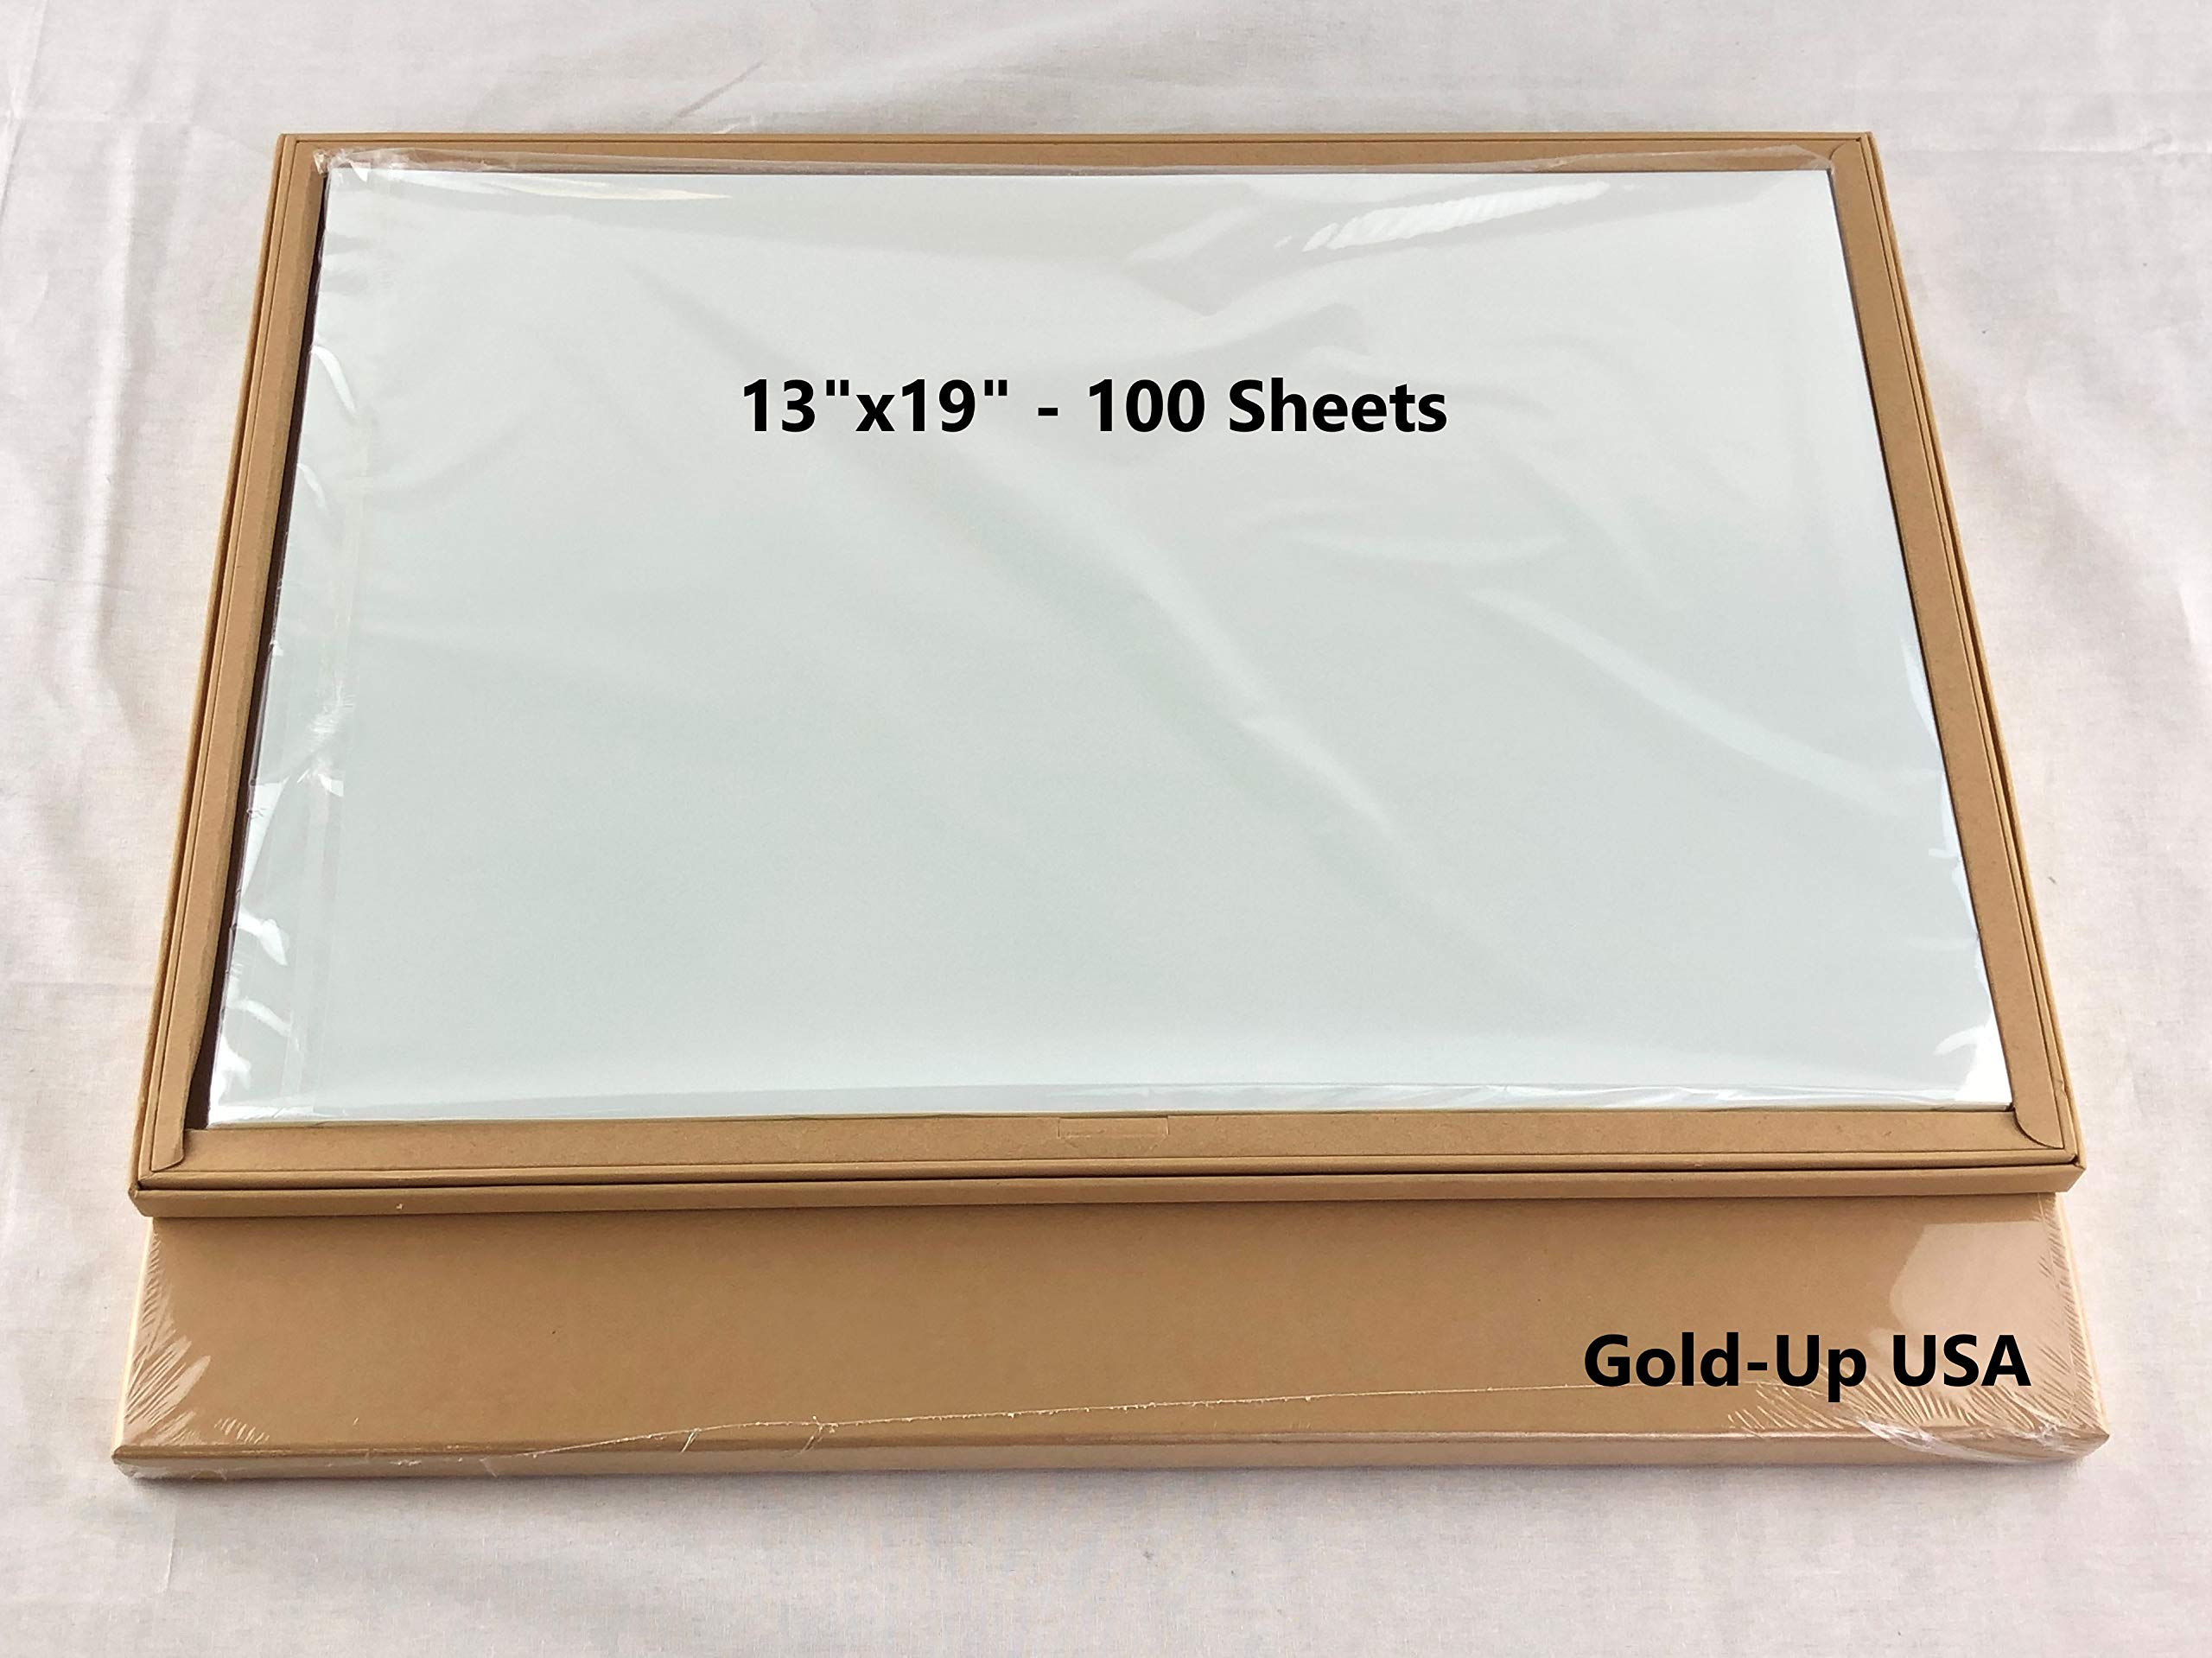 13 x 19 Inch Waterproof Inkjet Transparency Film for Silk Screen Printing - 1 Pack (100 Sheets)